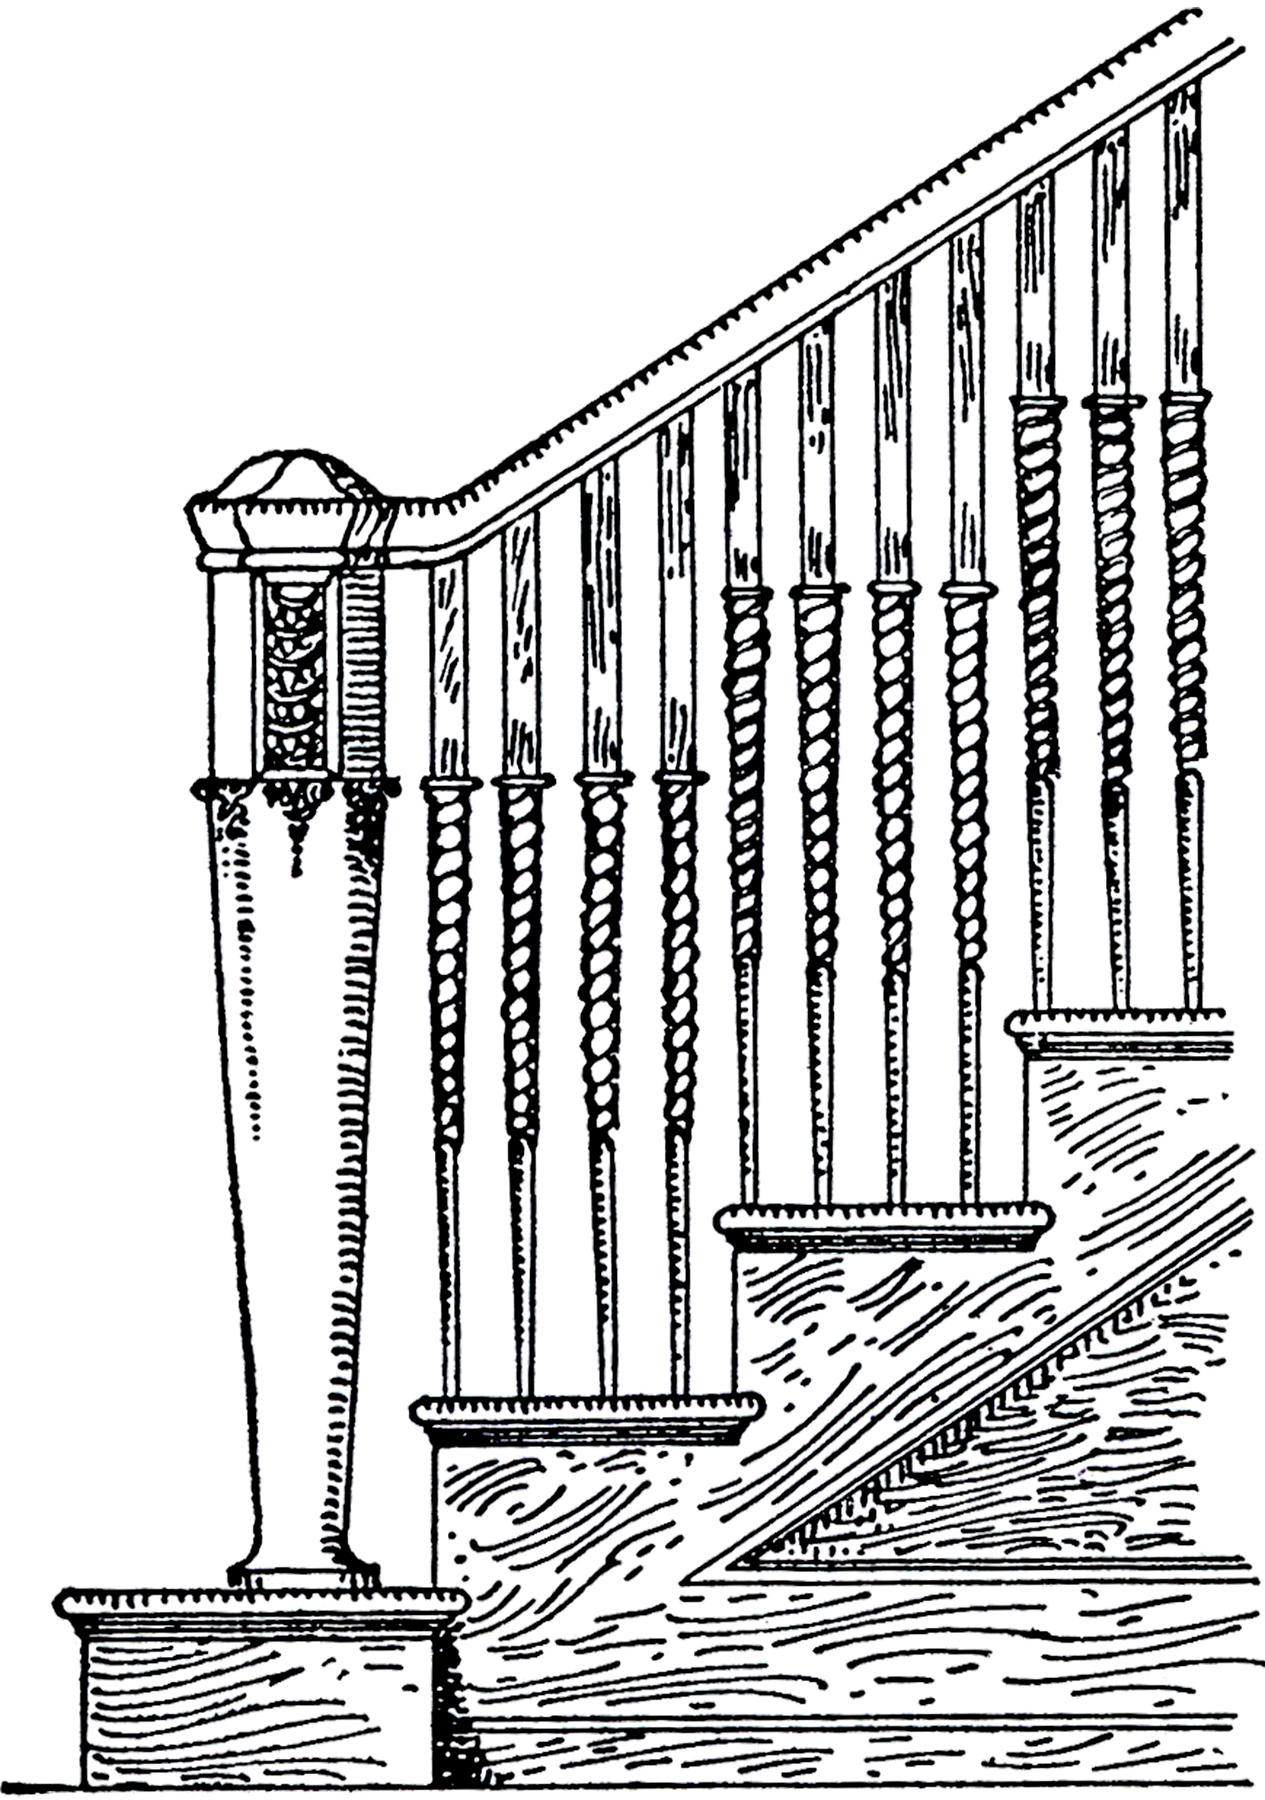 Vintage Staircase Image The